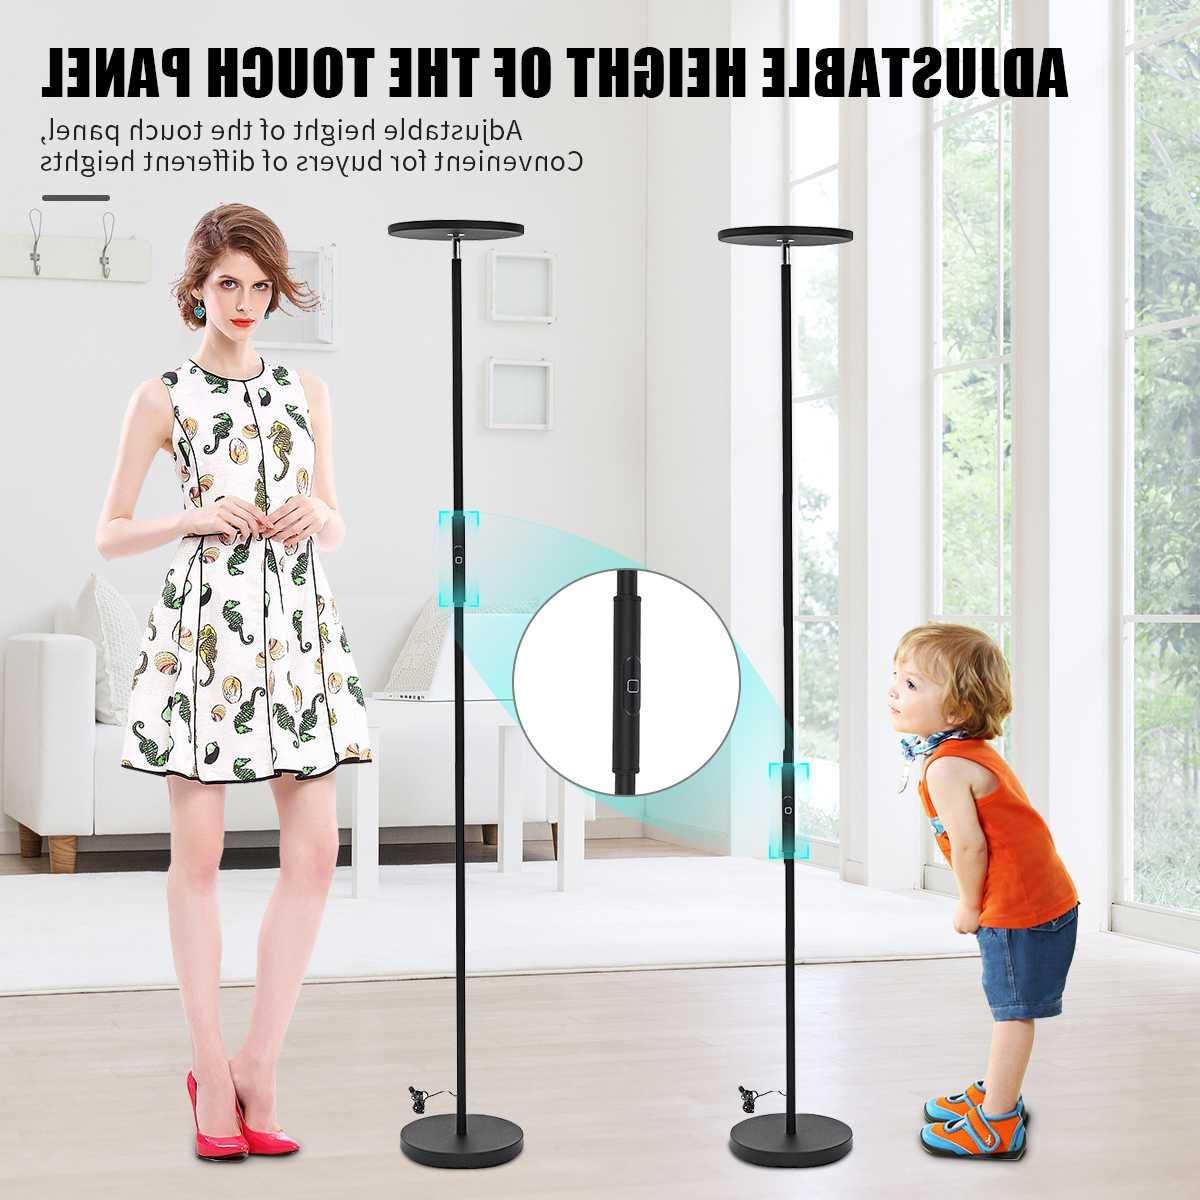 European Adjustable LED <font><b>Floor</b></font> <font><b>Lamps</b></font> Lights Remote Control Modern Living Room